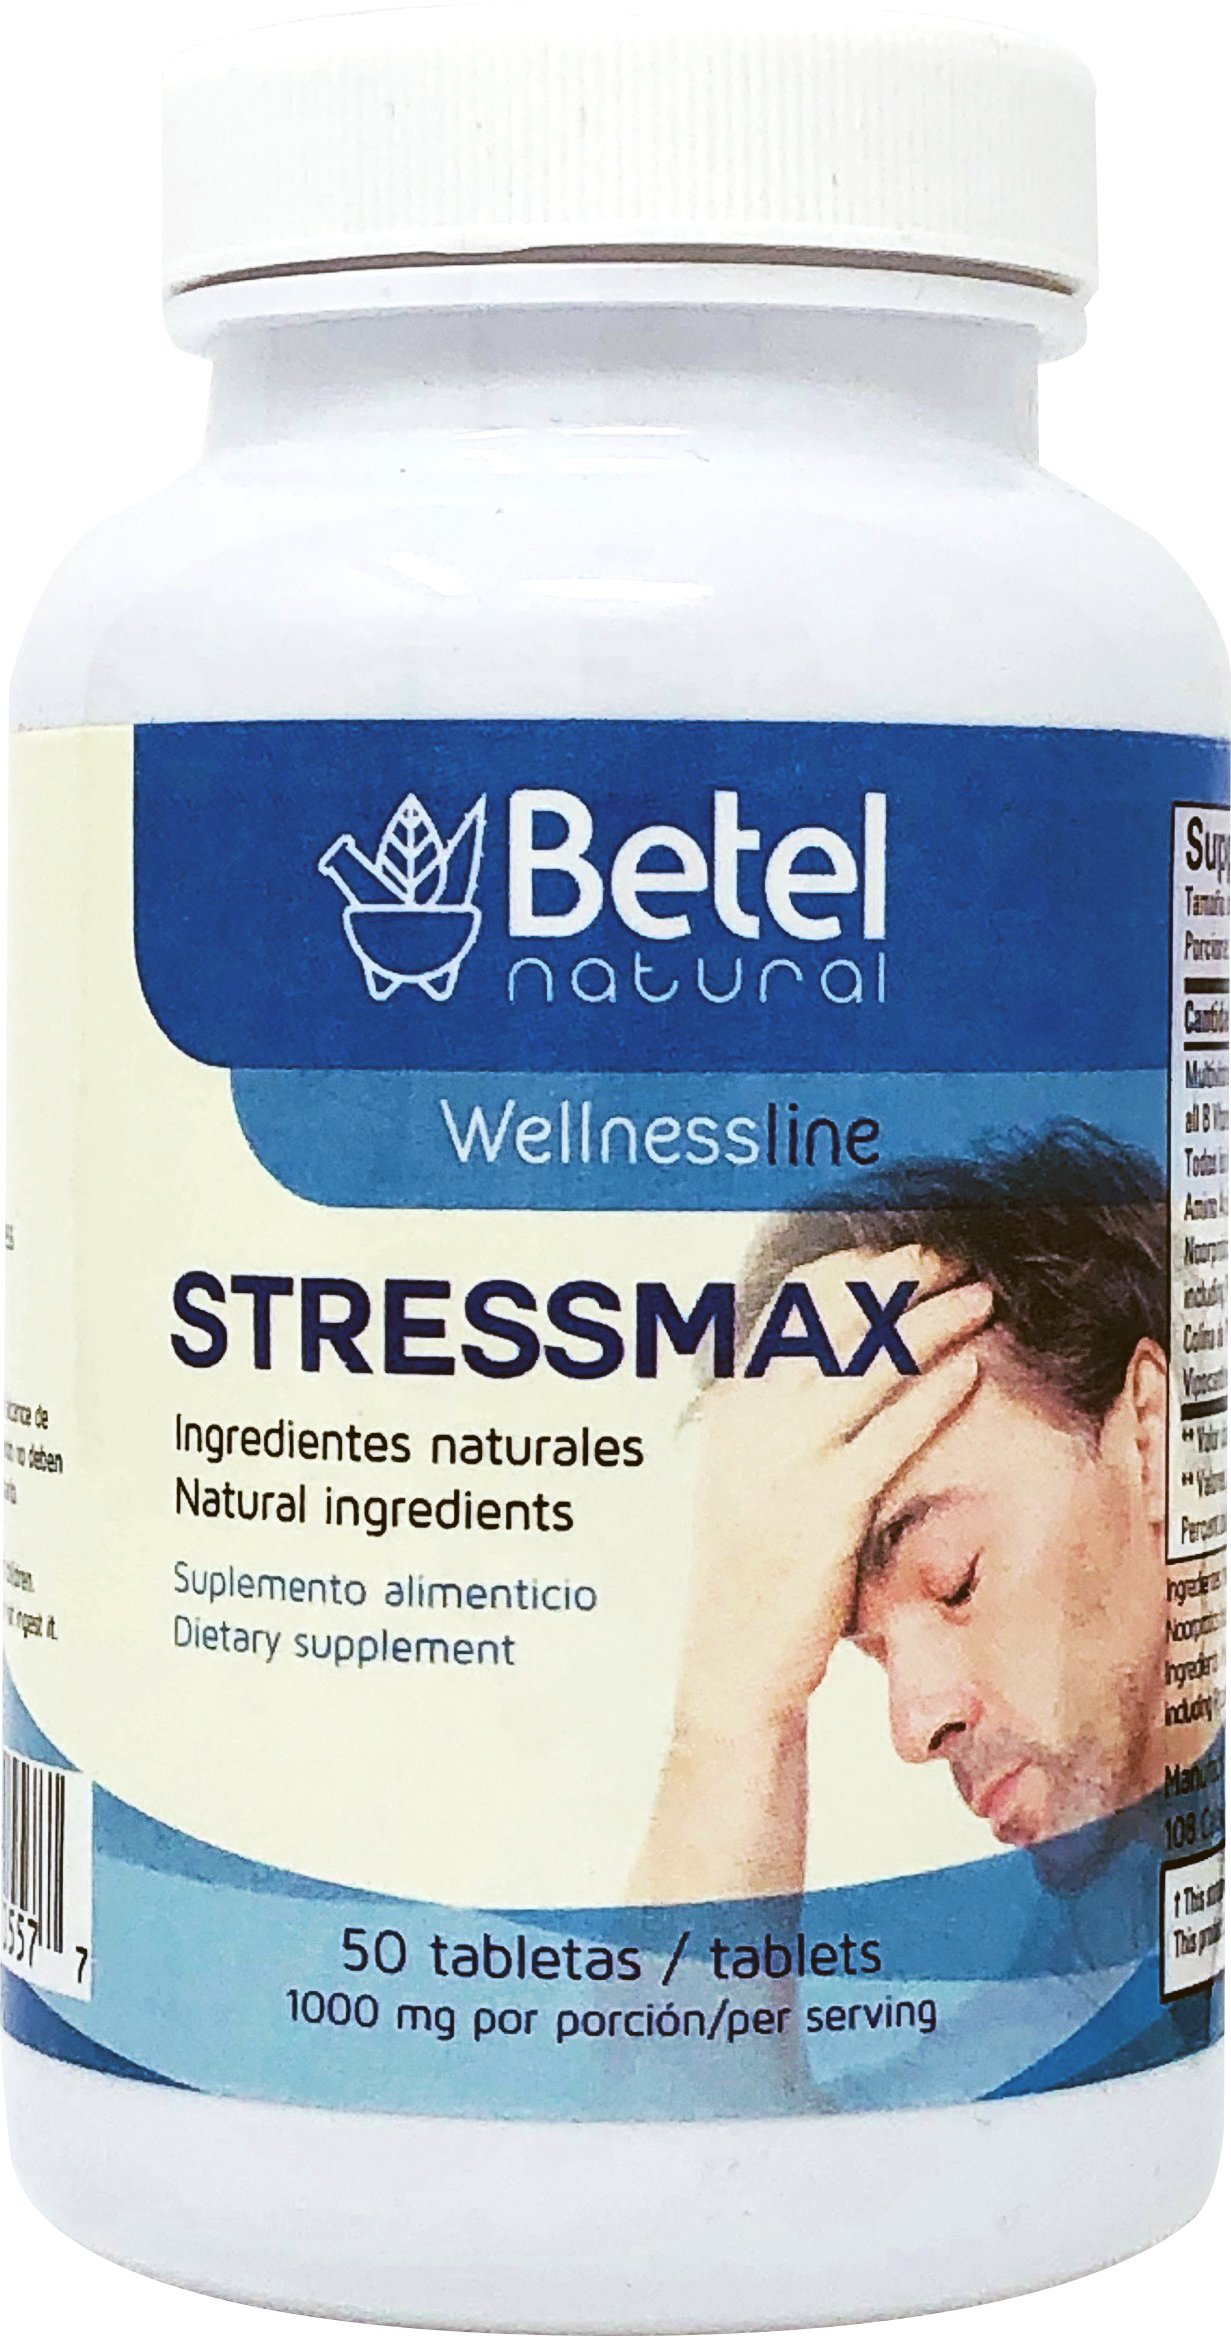 Amazon.com: Stressmax Tablets by Betel Natural - Anxiety and Stress Relieving - 50 Tablets: Health & Personal Care